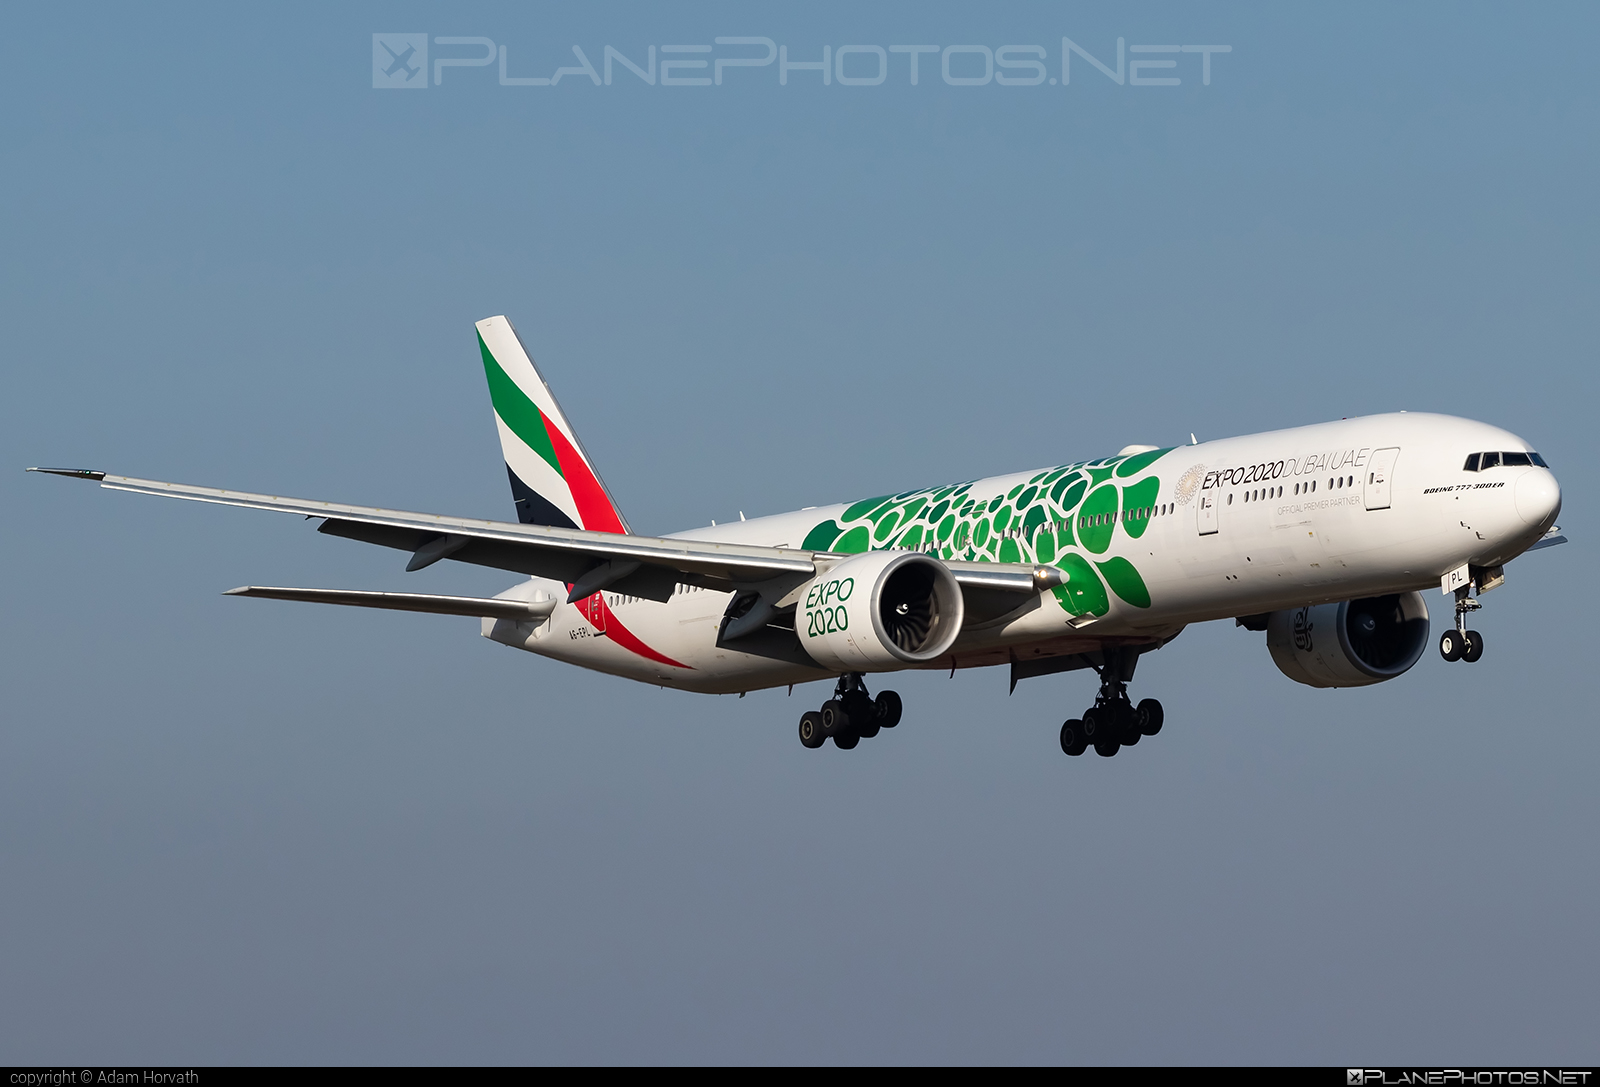 Boeing 777-300ER - A6-EPL operated by Emirates #b777 #b777er #boeing #boeing777 #emirates #tripleseven